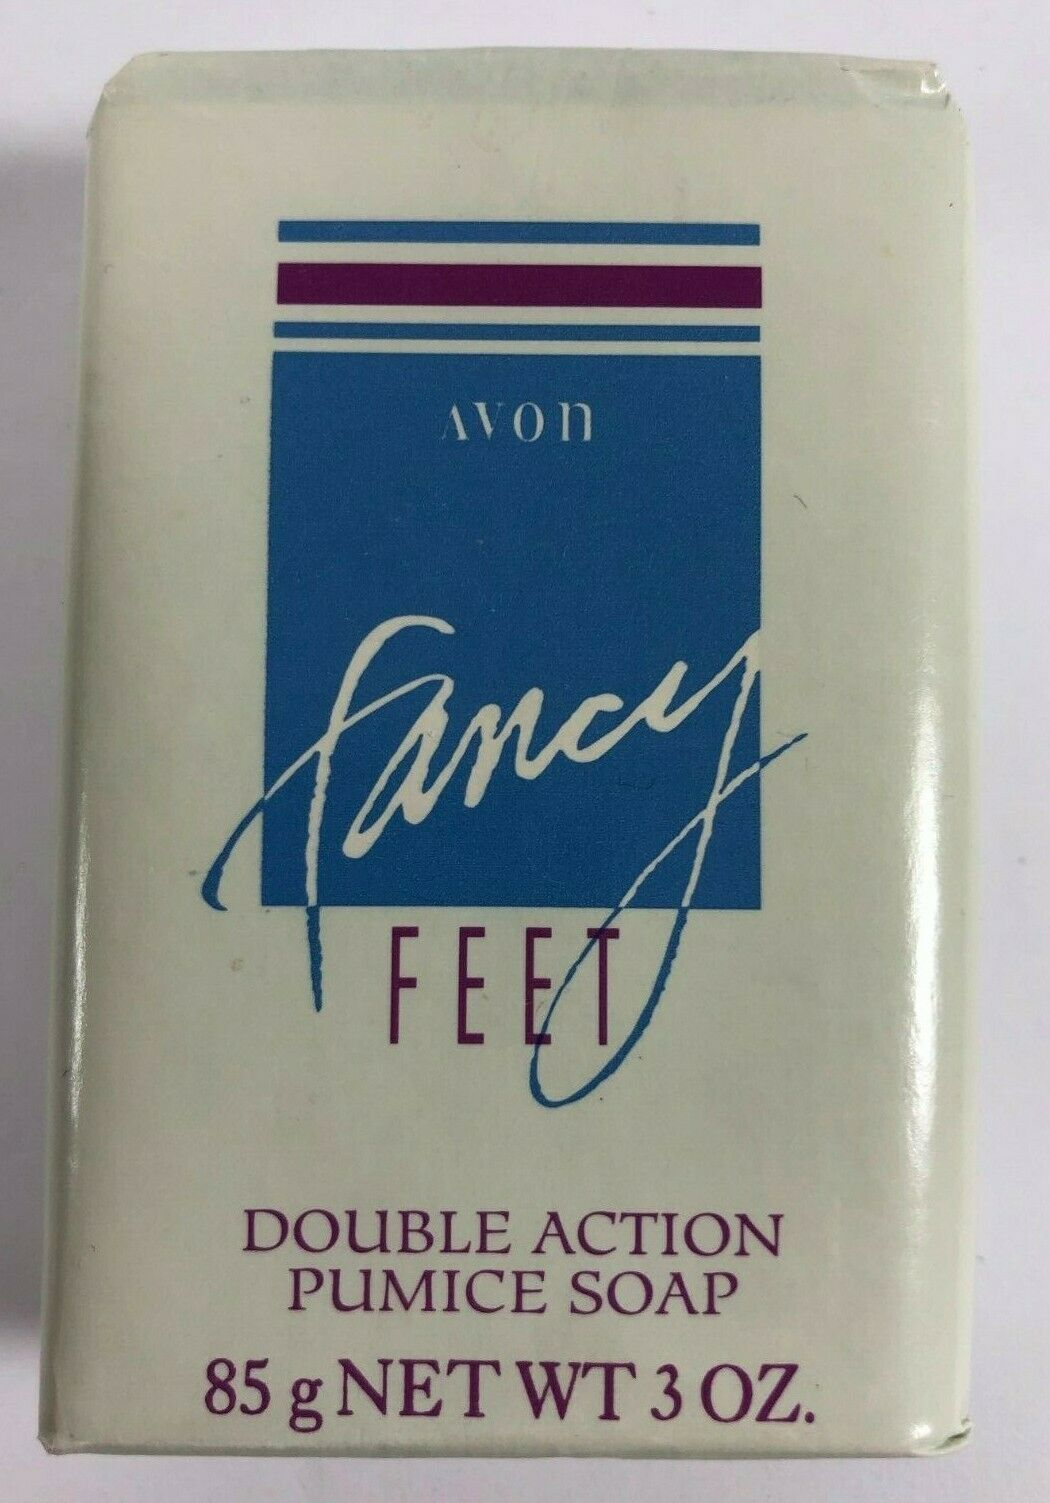 NOS AVON Fancy Feet Double Action Pumice Sloughs Softens Soap 3 oz Bar